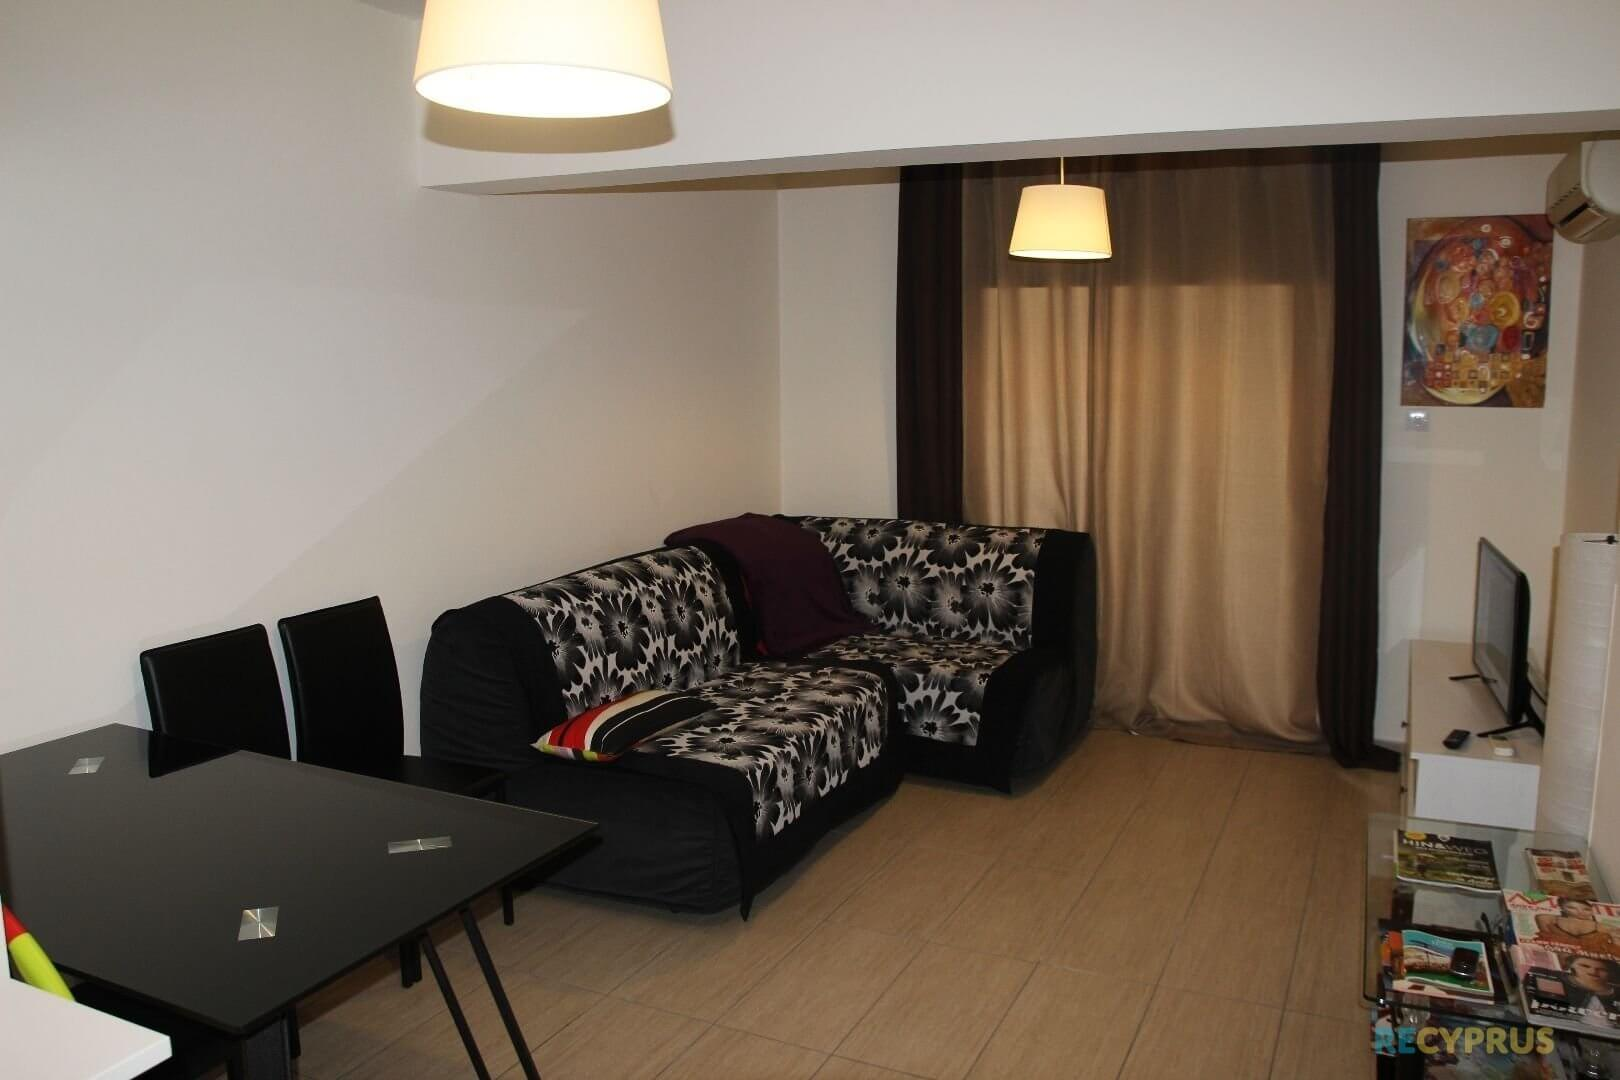 Apartment for sale Ayia Napa Famagusta Cyprus 2 3506